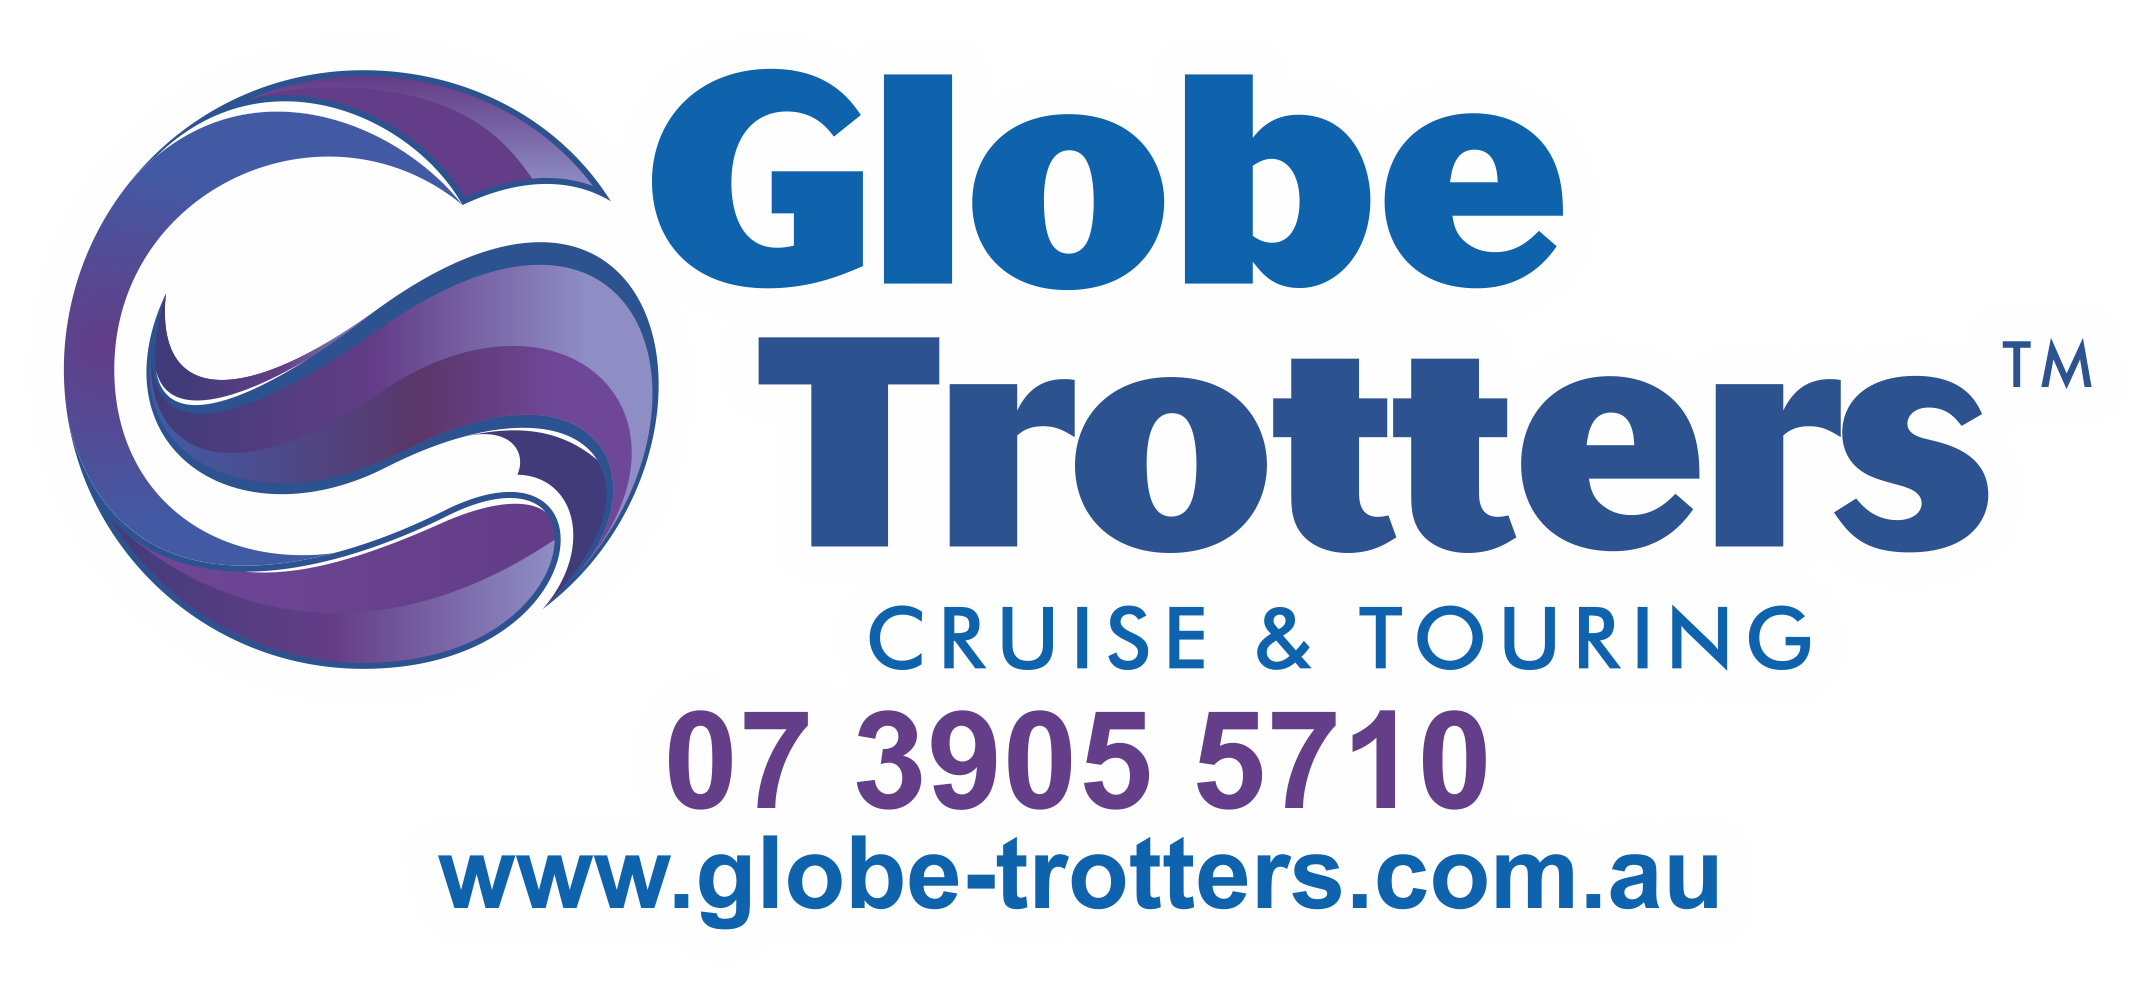 GLOBE TROTTER.png